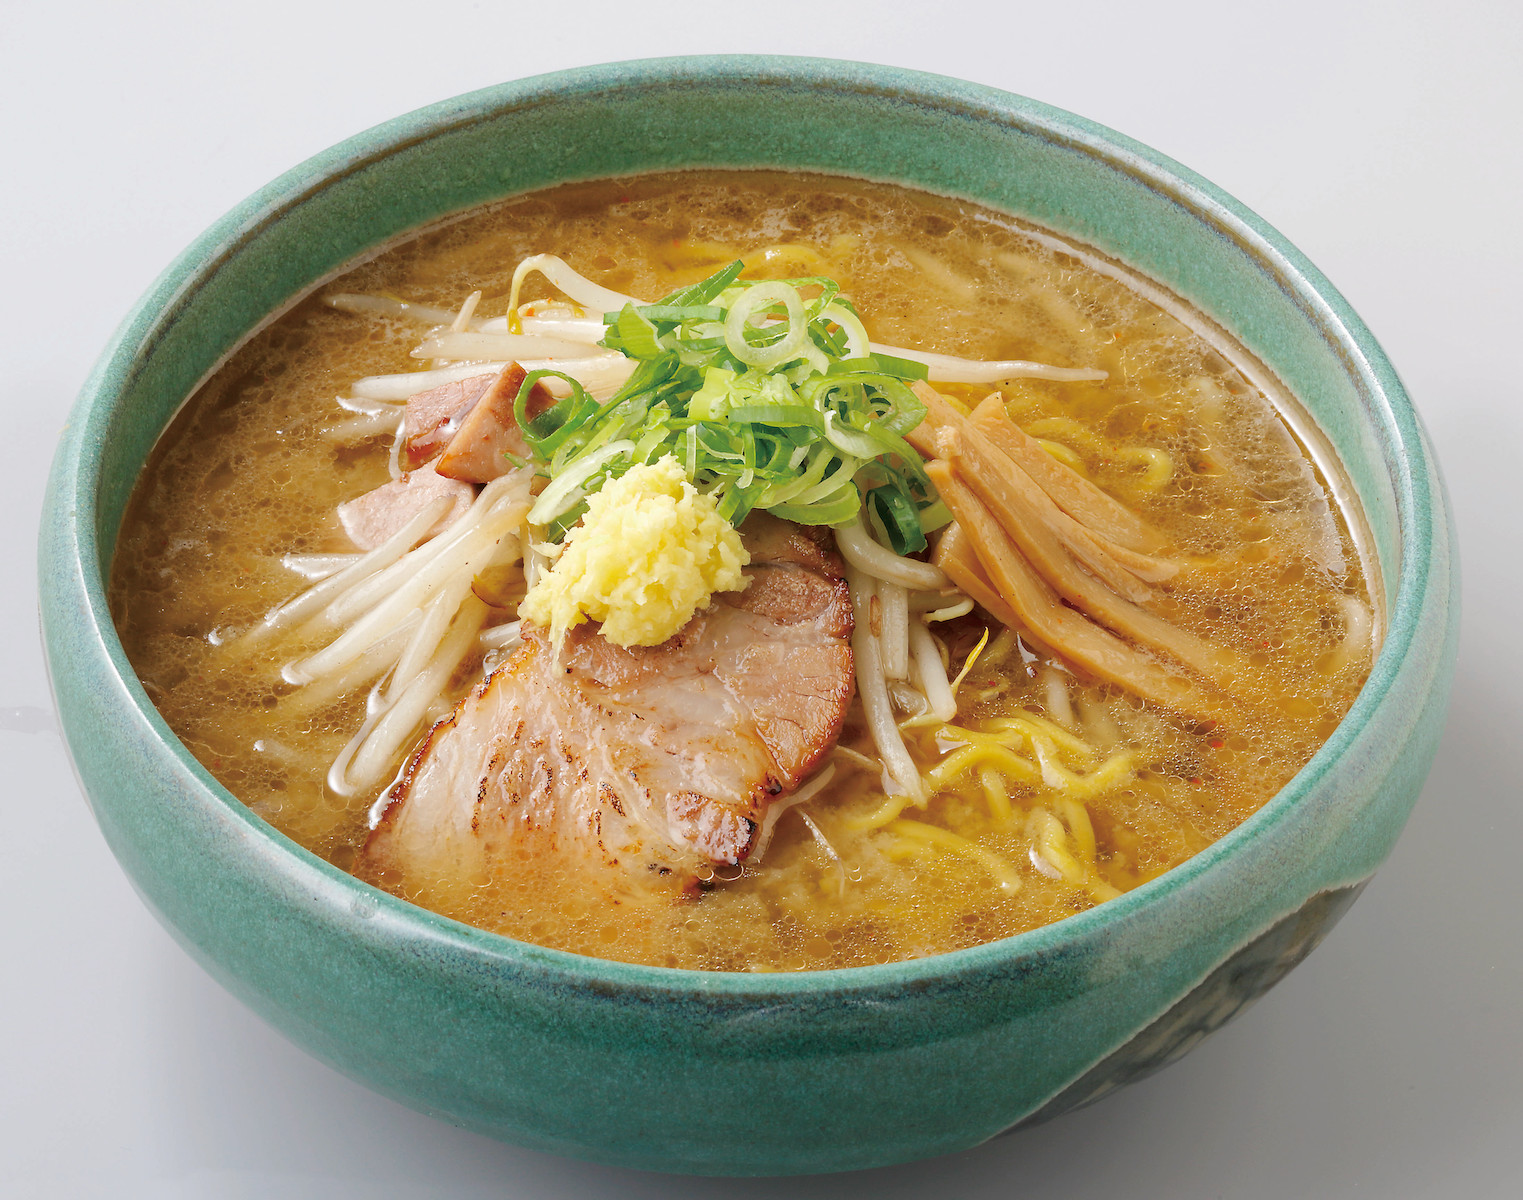 Menya Saimi's take on Miso Ramen features medium-thick curly noodles. Their hearty taste balances well with the thick broth.